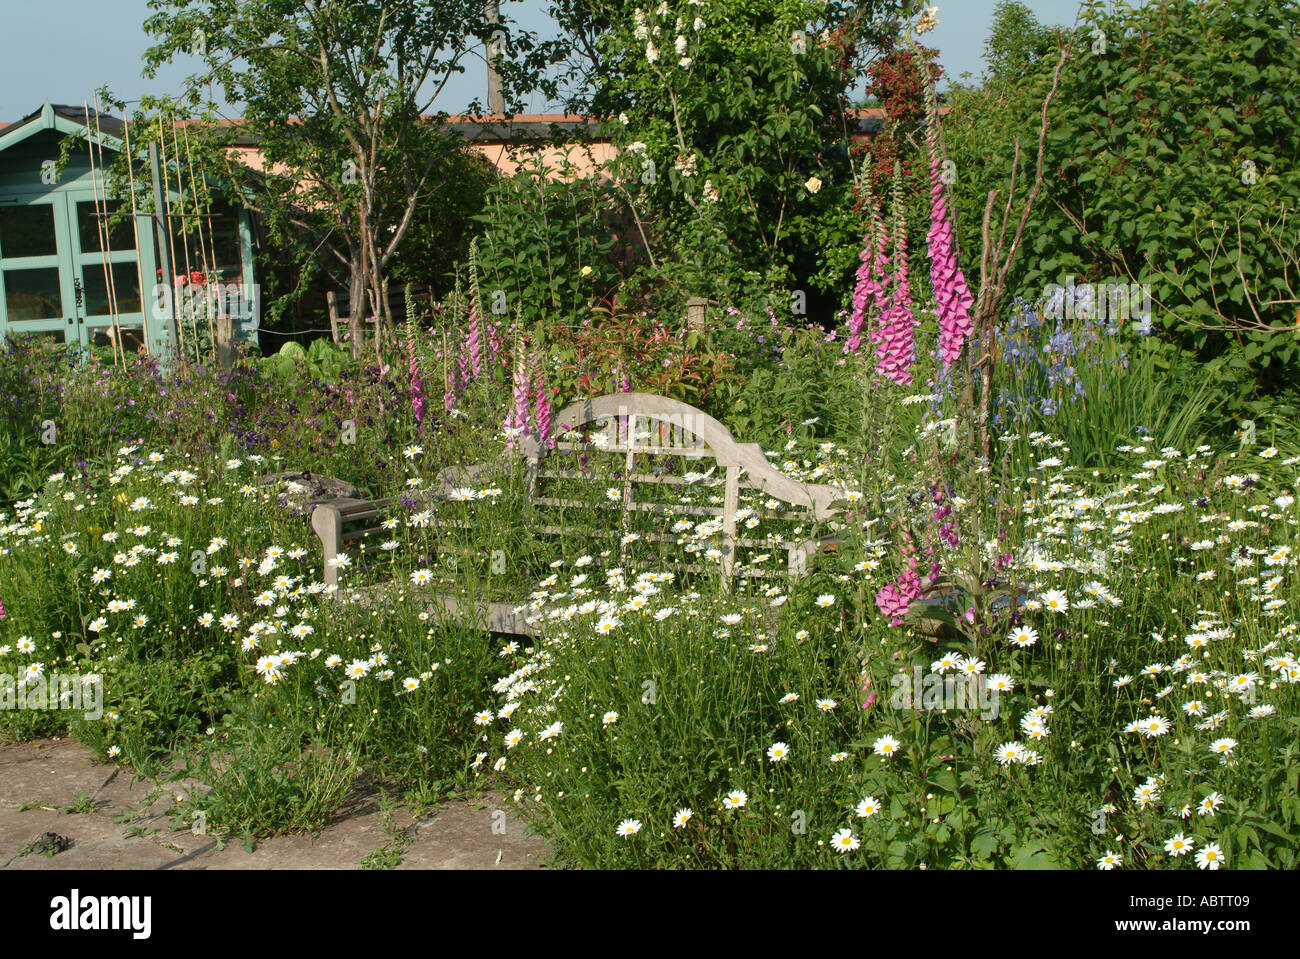 Old Garden Seat Amongst Foxgloves and Oxeye Daisies in a Devon Country Garden England United Kingdom UK Stock Photo